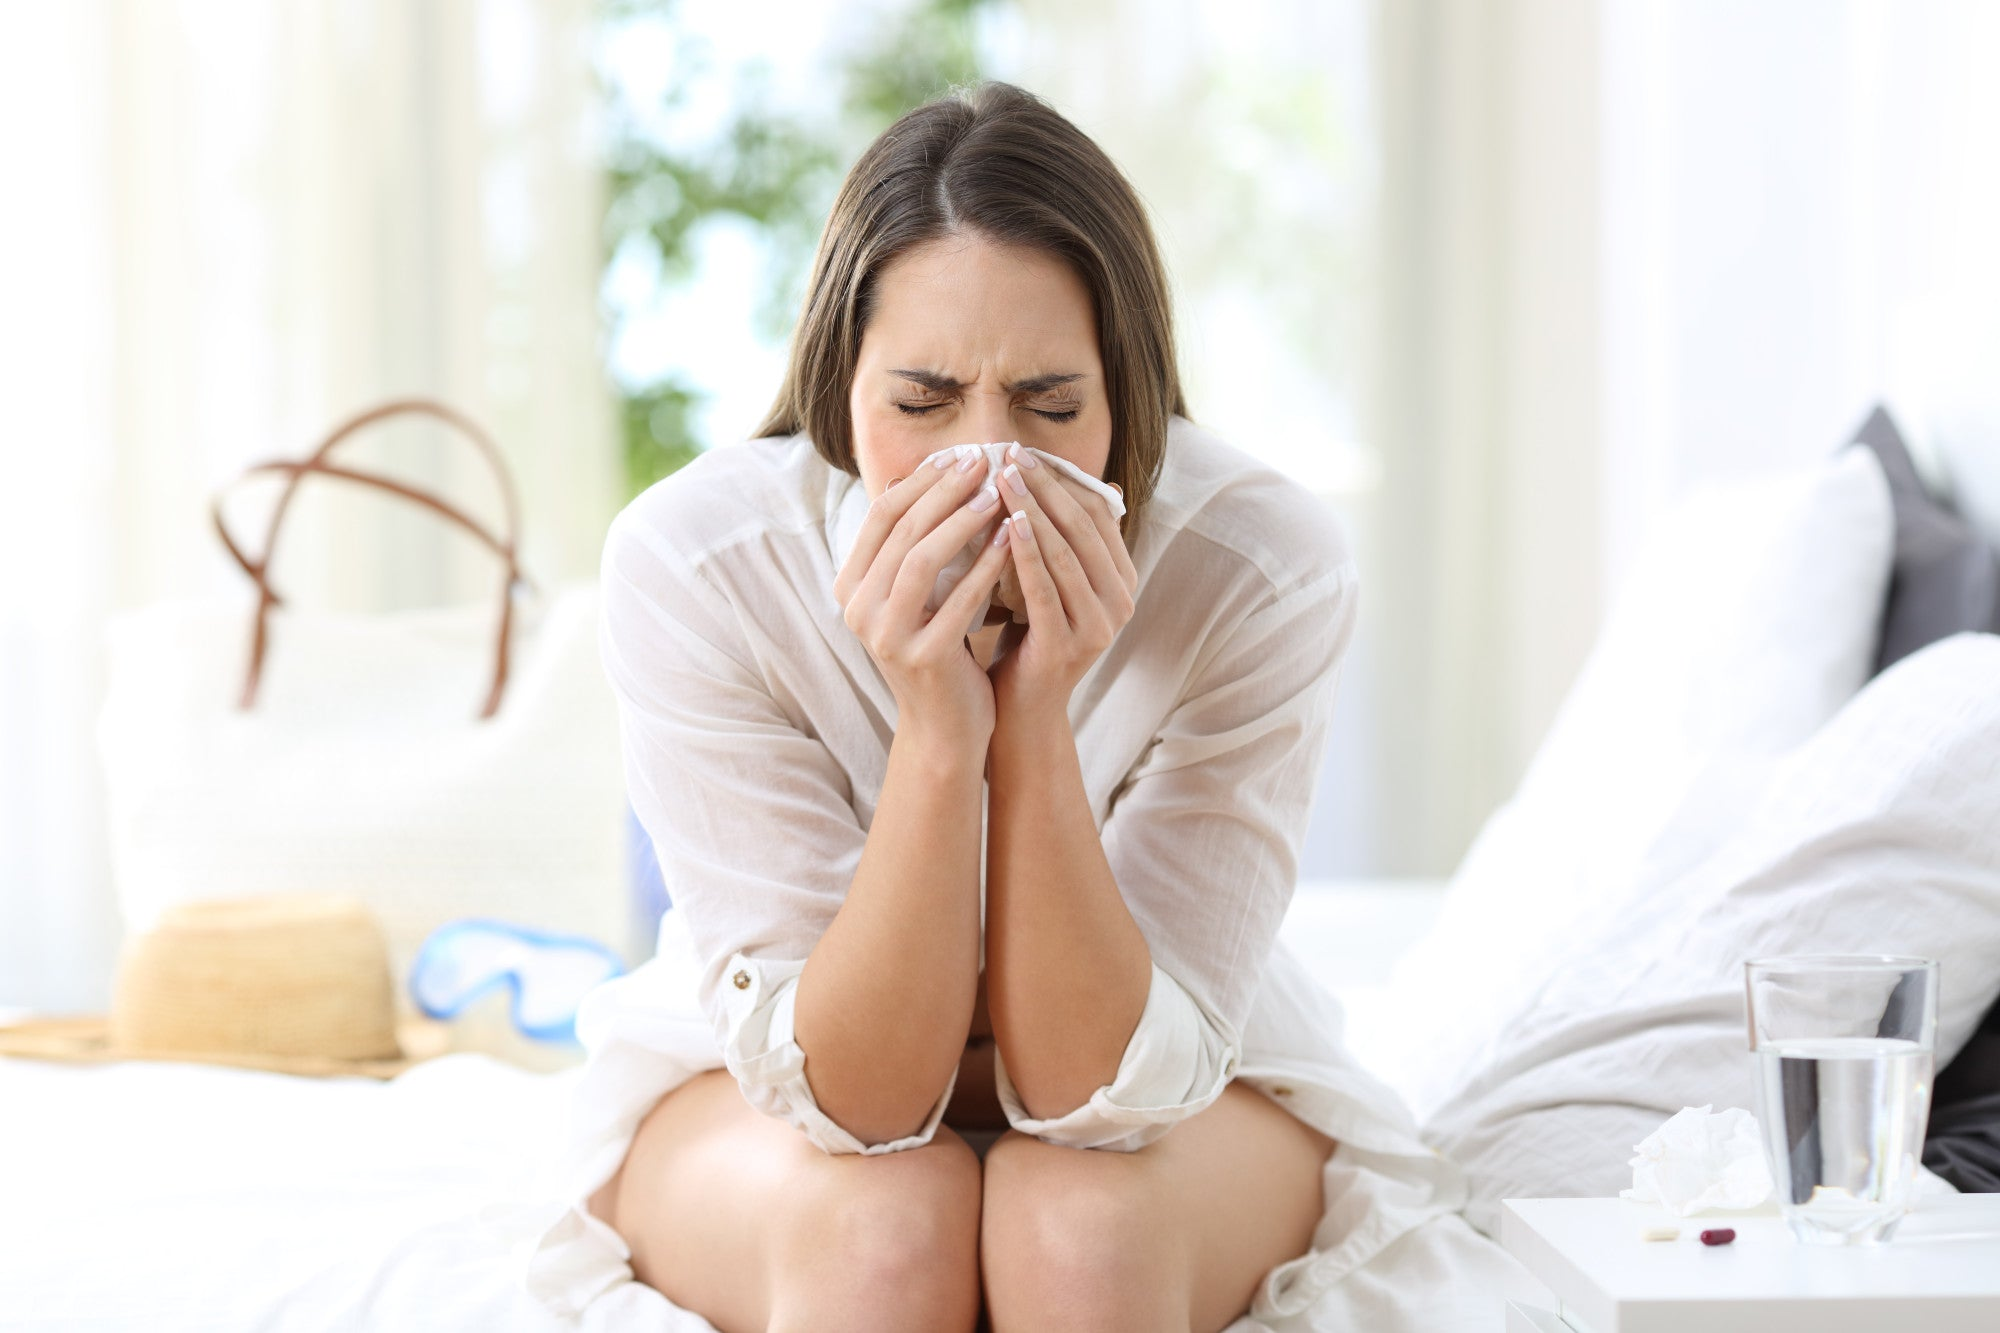 What Allergies Are in the Air That HVAC Cleaning Can Prevent?